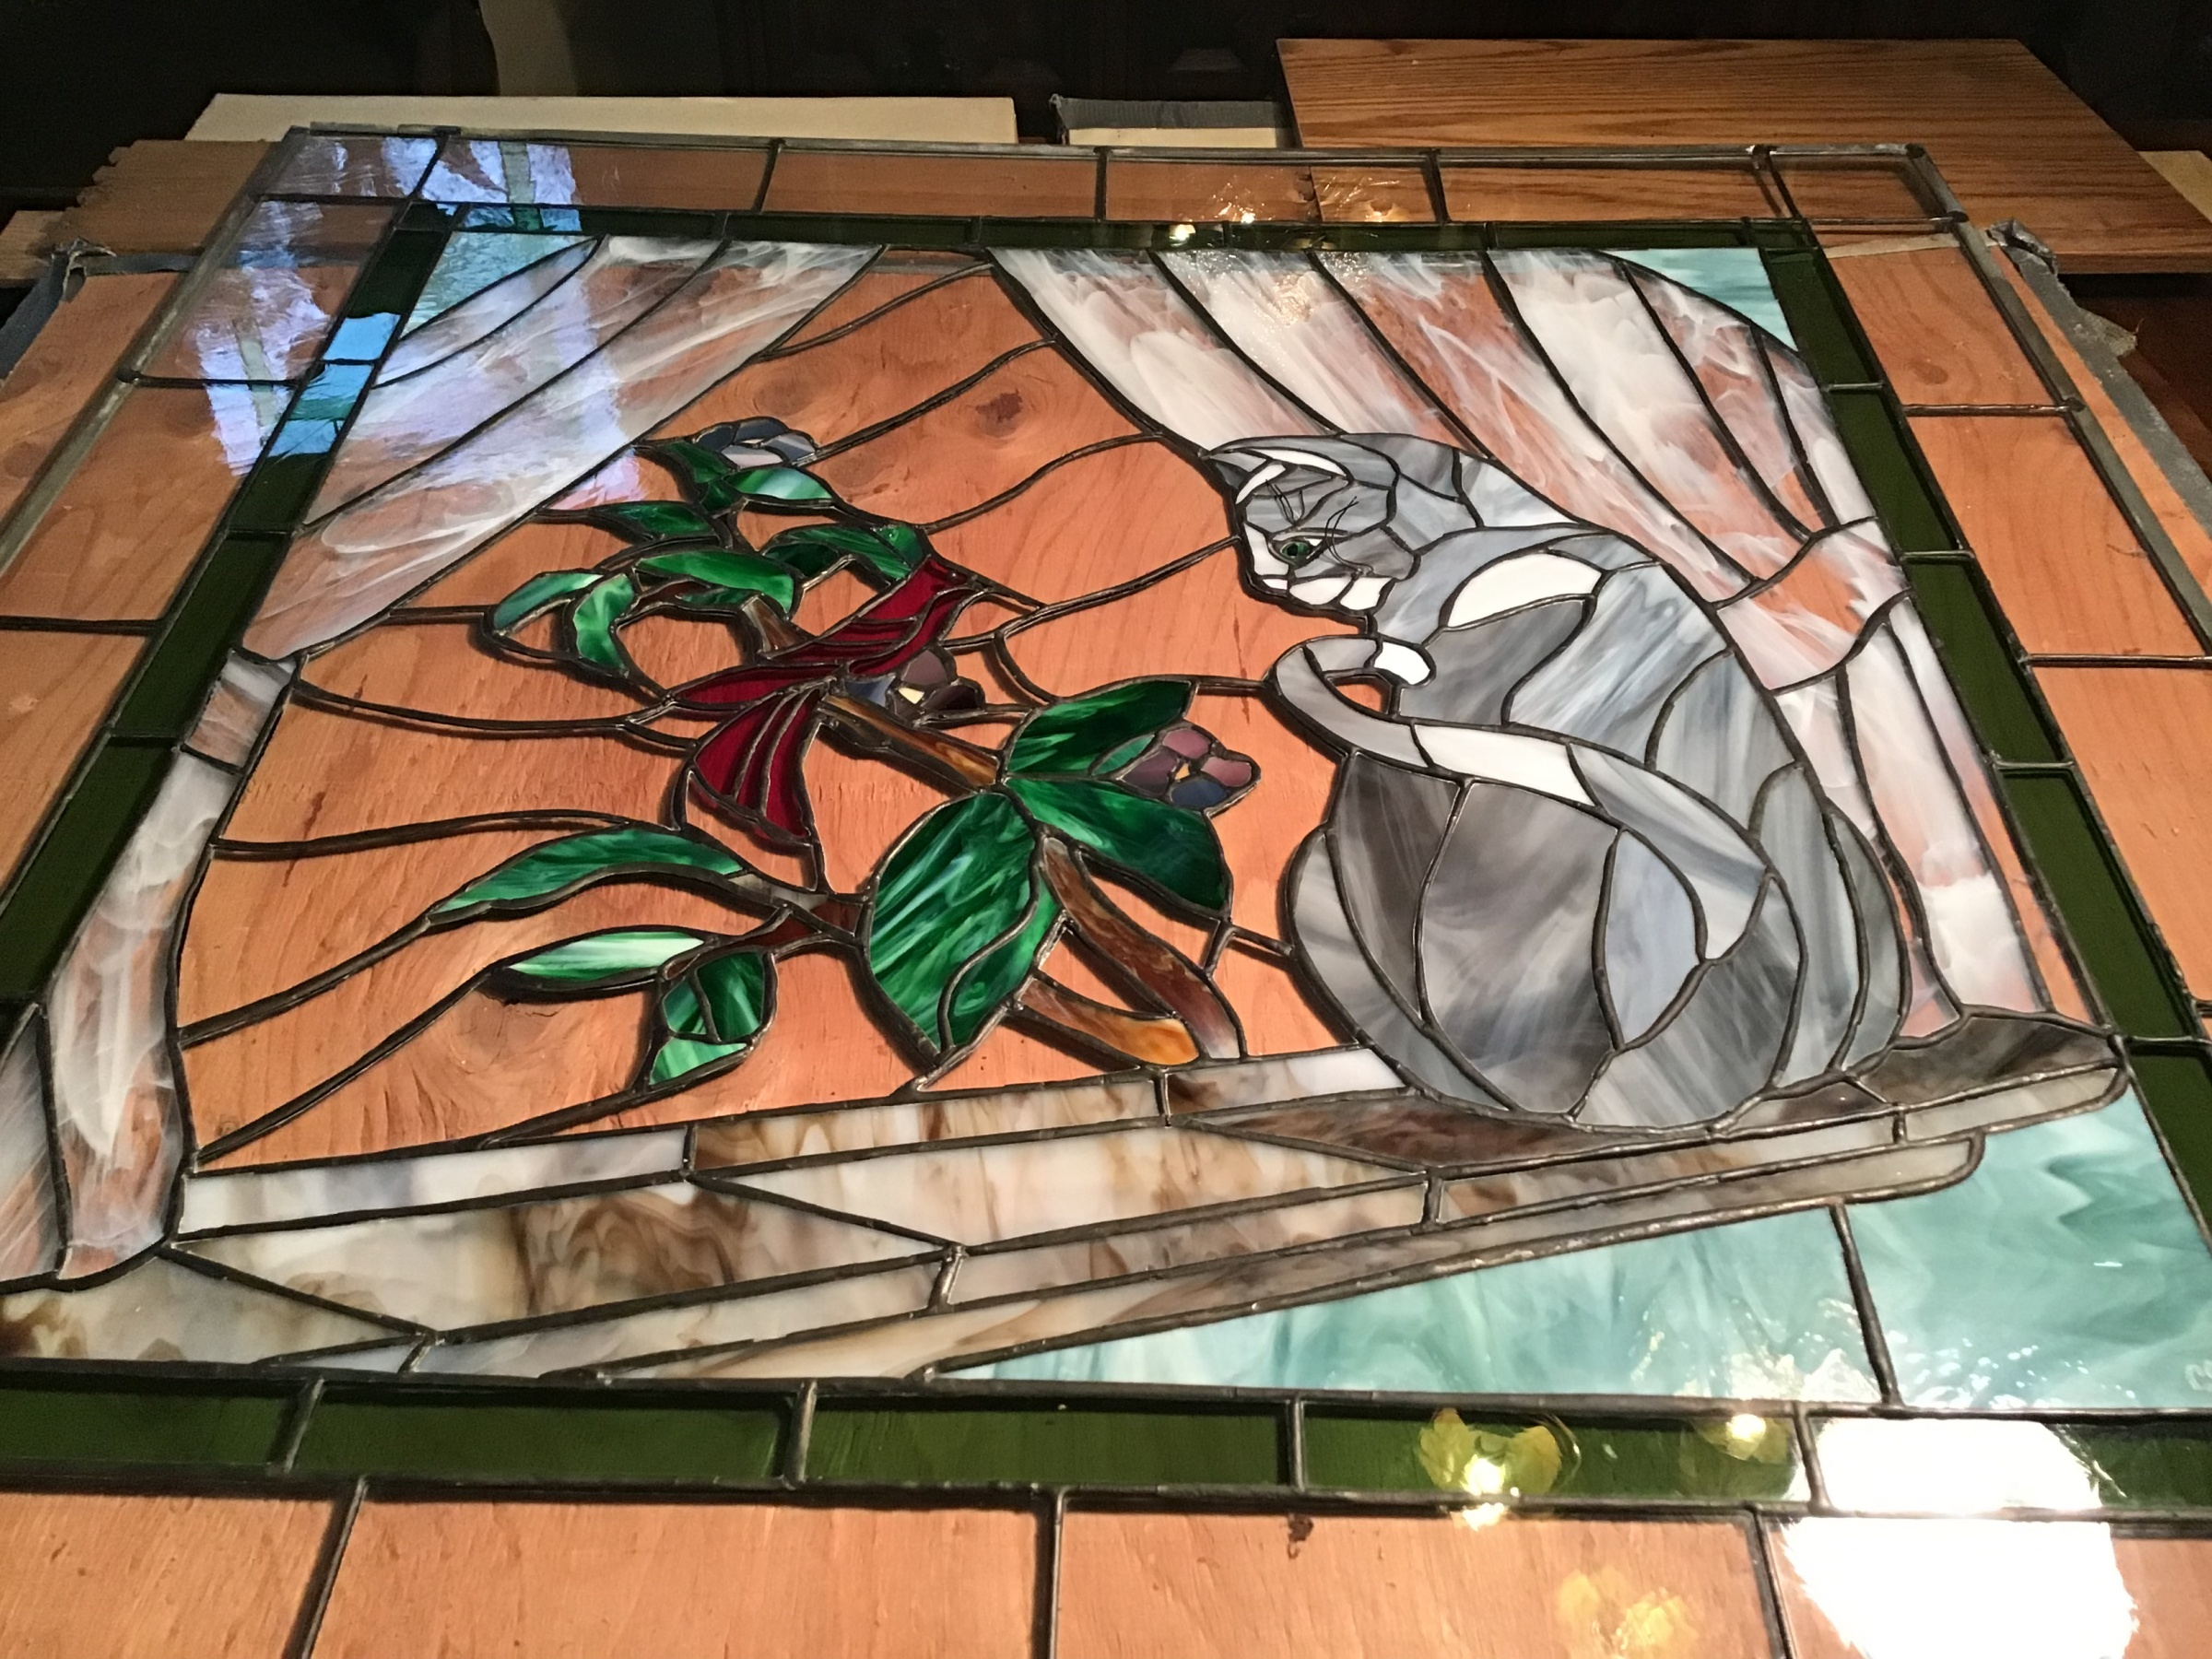 Adventures in Stained Glass-500339a8-de4f-408d-a62f-c1af34dd7f45.jpg